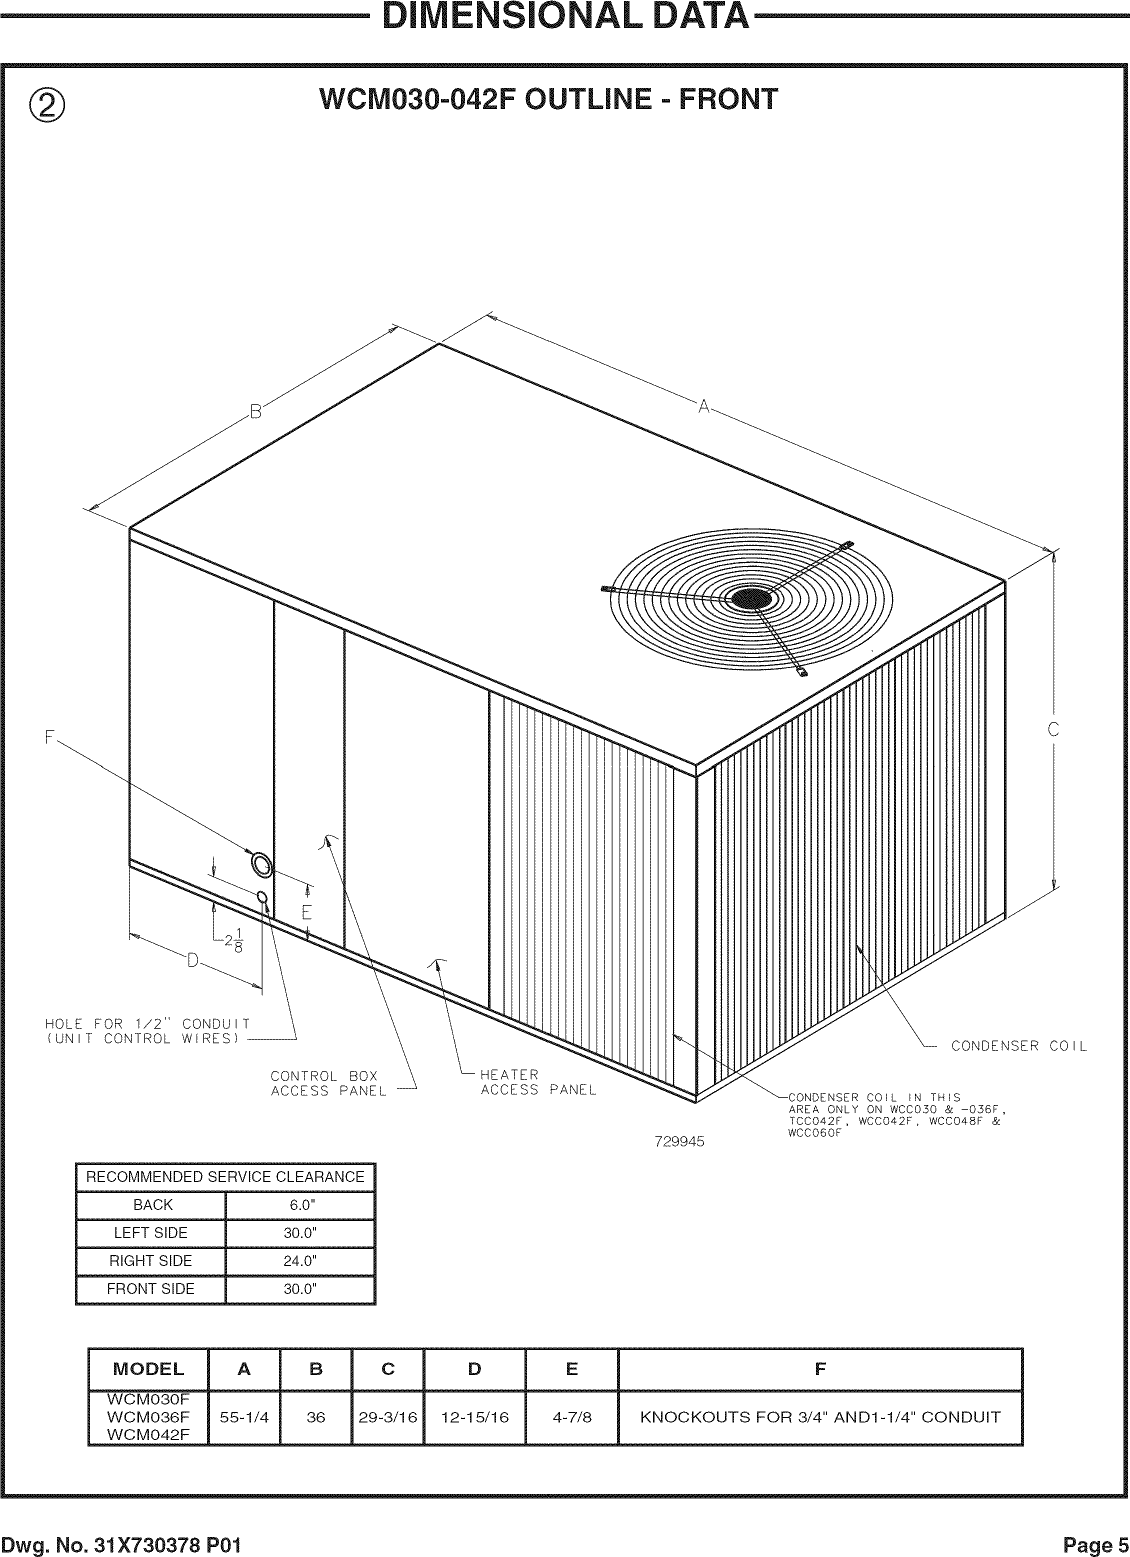 TRANE Package Units(both Units Combined) Manual L0905303